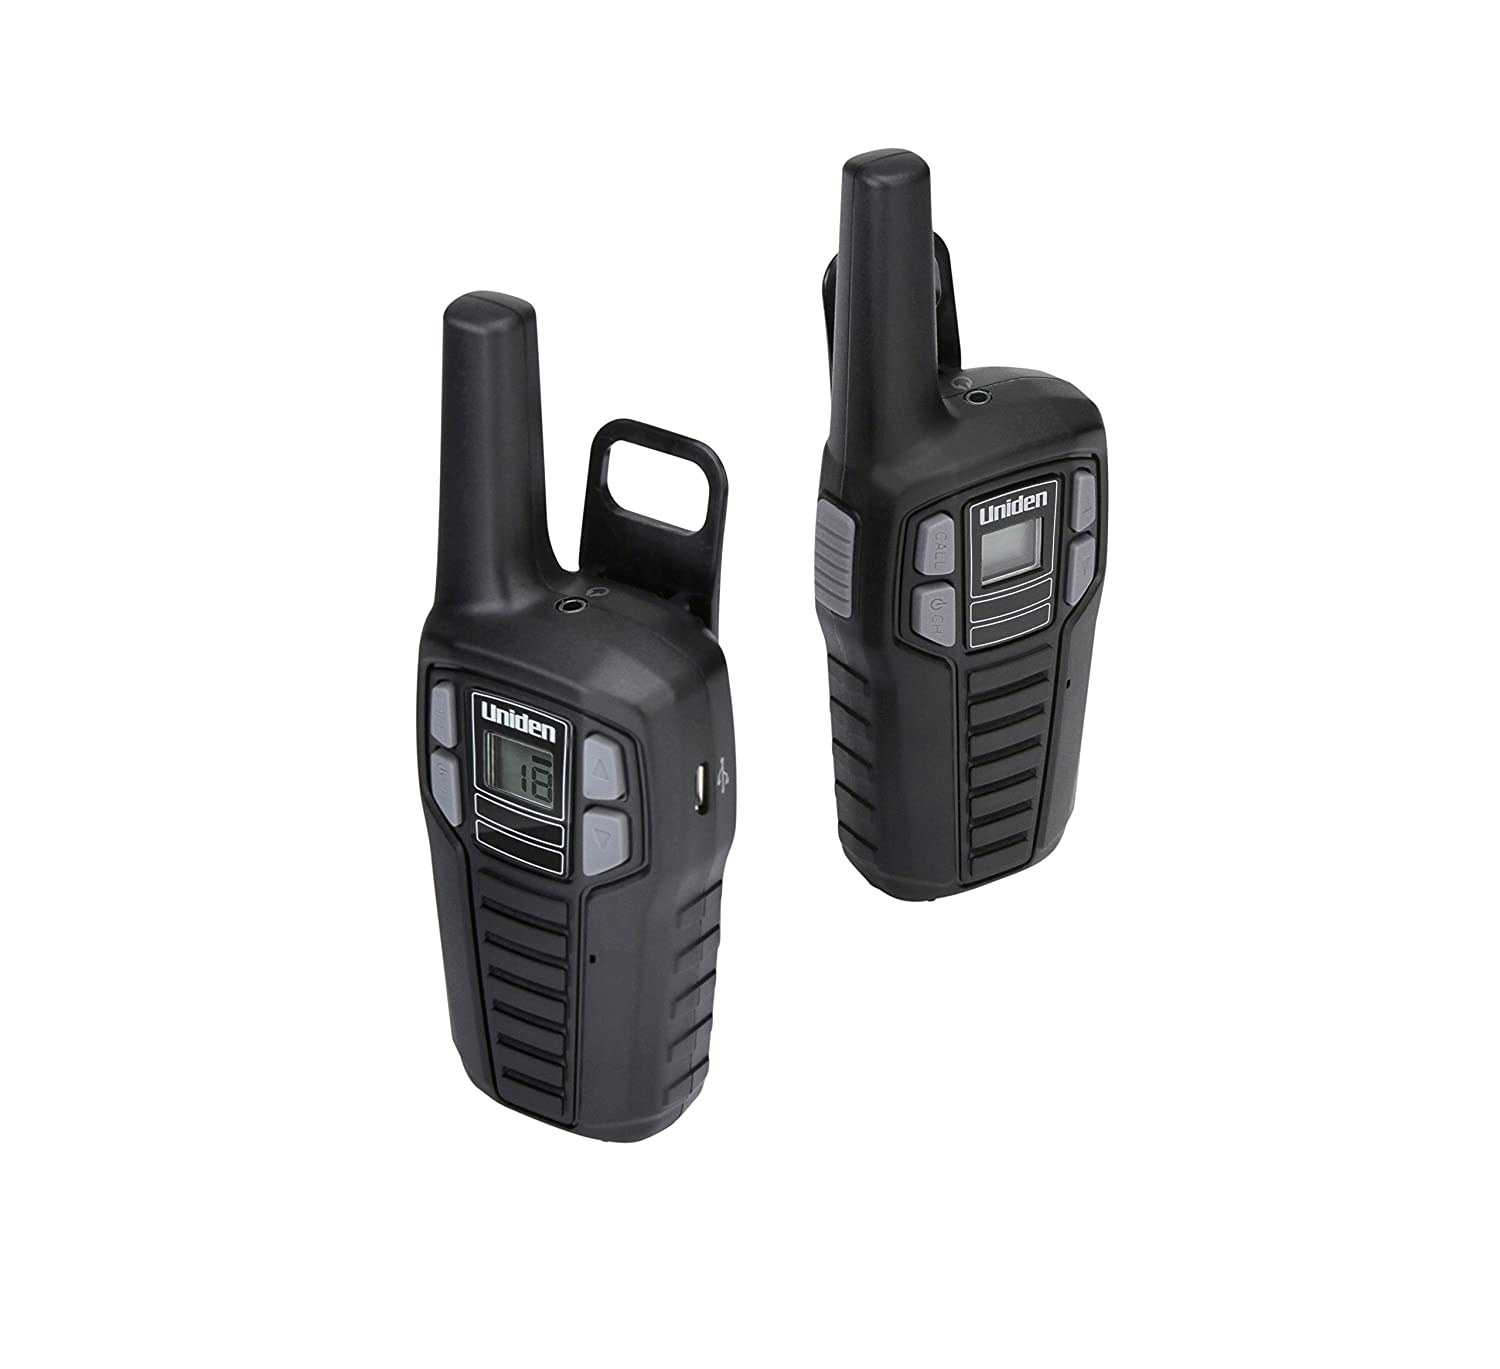 Rechargeable Batteries with Convenient Charging Cable 2-Pack Black Color Roger Beep FRS Two-Way Radio Walkie Talkies NOAA Weather Channels Uniden SX167-2CH Up to 16 Mile Range